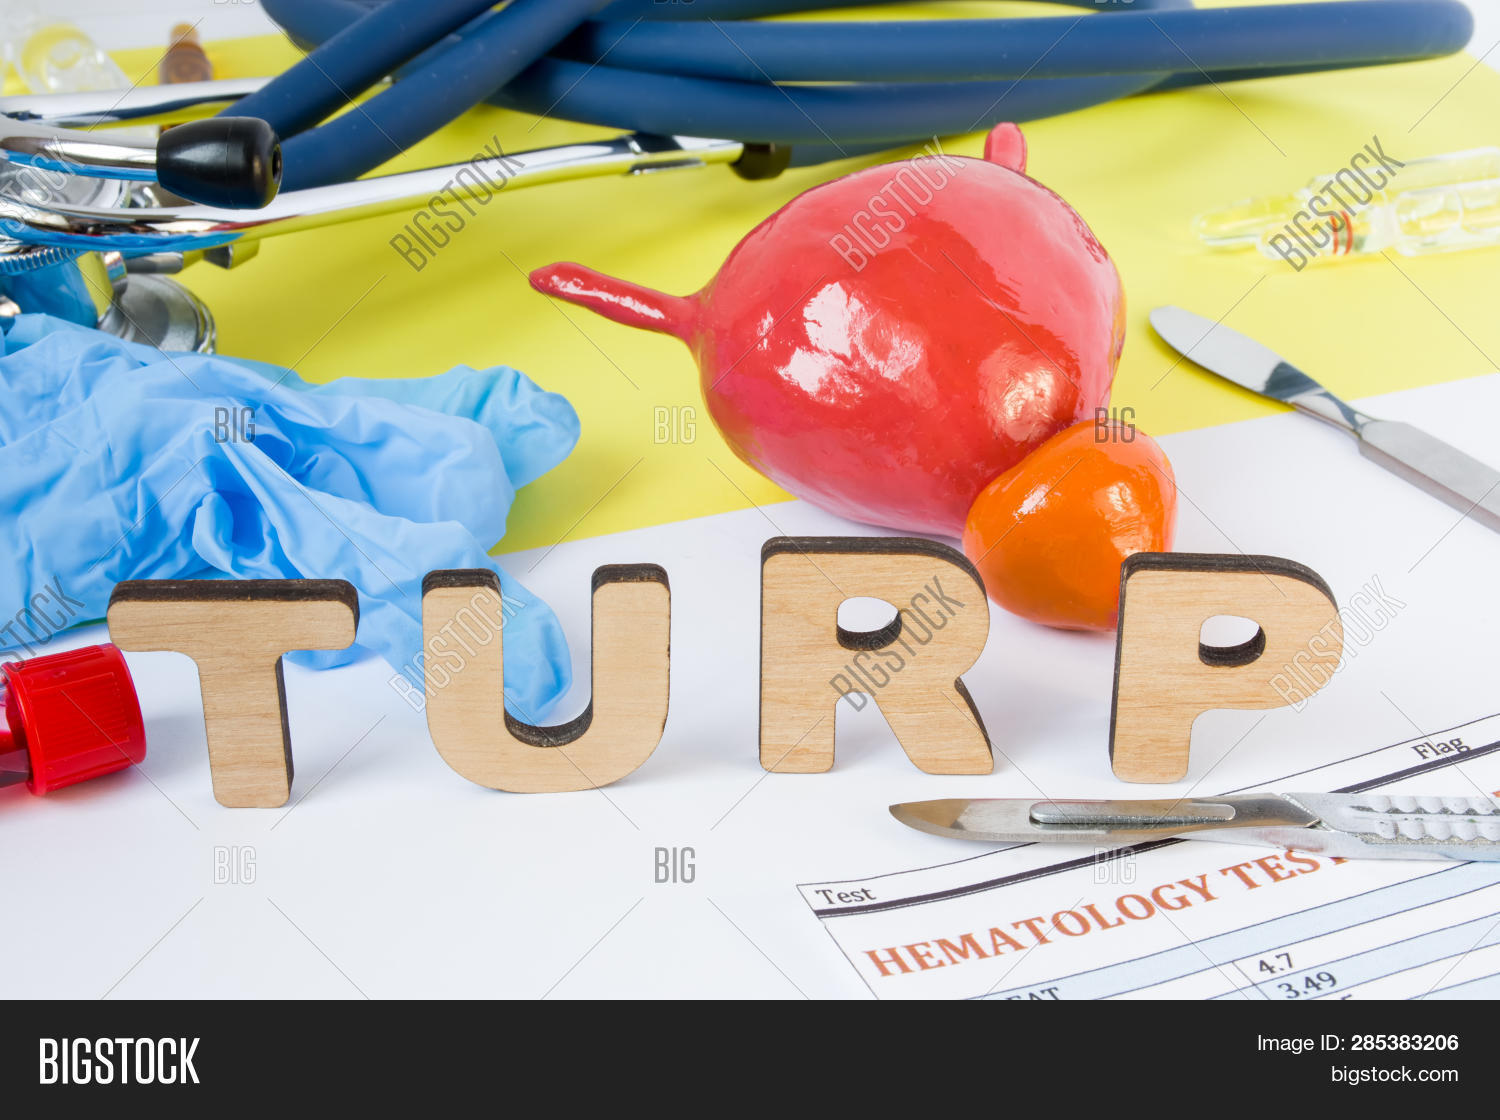 Turp Medical Surgery Image & Photo (Free Trial) | Bigstock